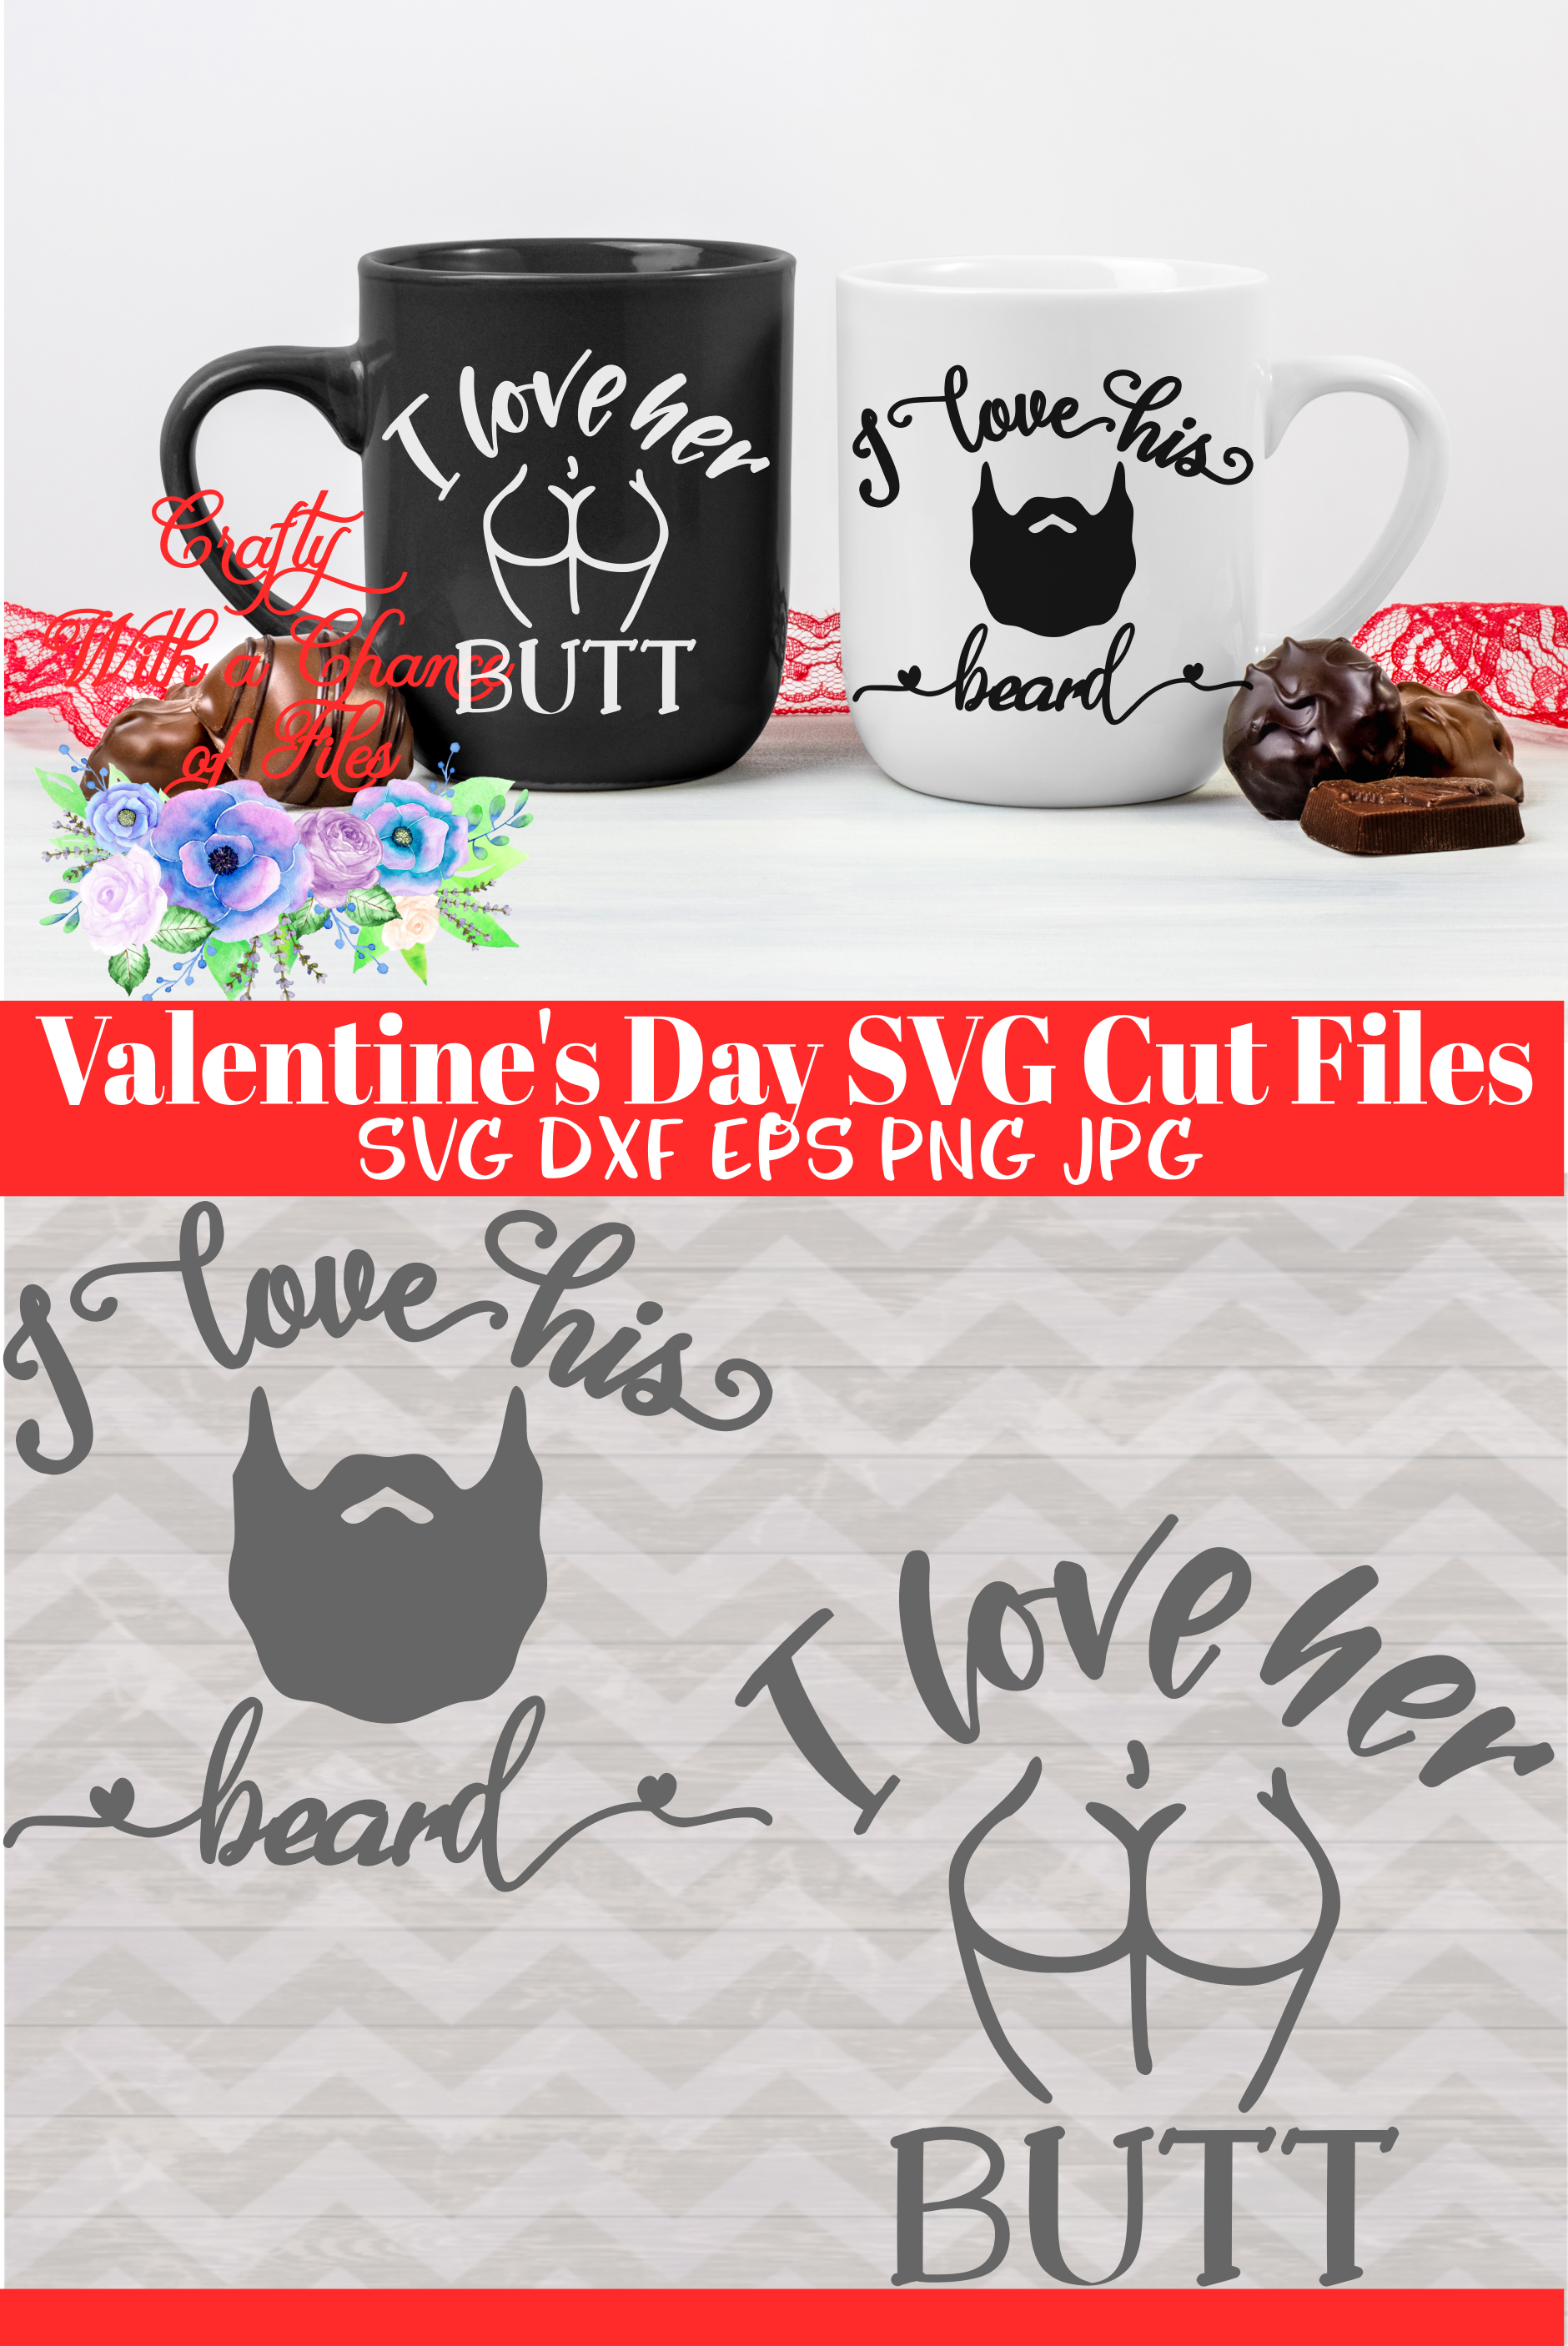 Valentine's Day Gifts for Couples - I Love His Beard I Love Her Butt SVG #sweetestdaygiftsforboyfriend